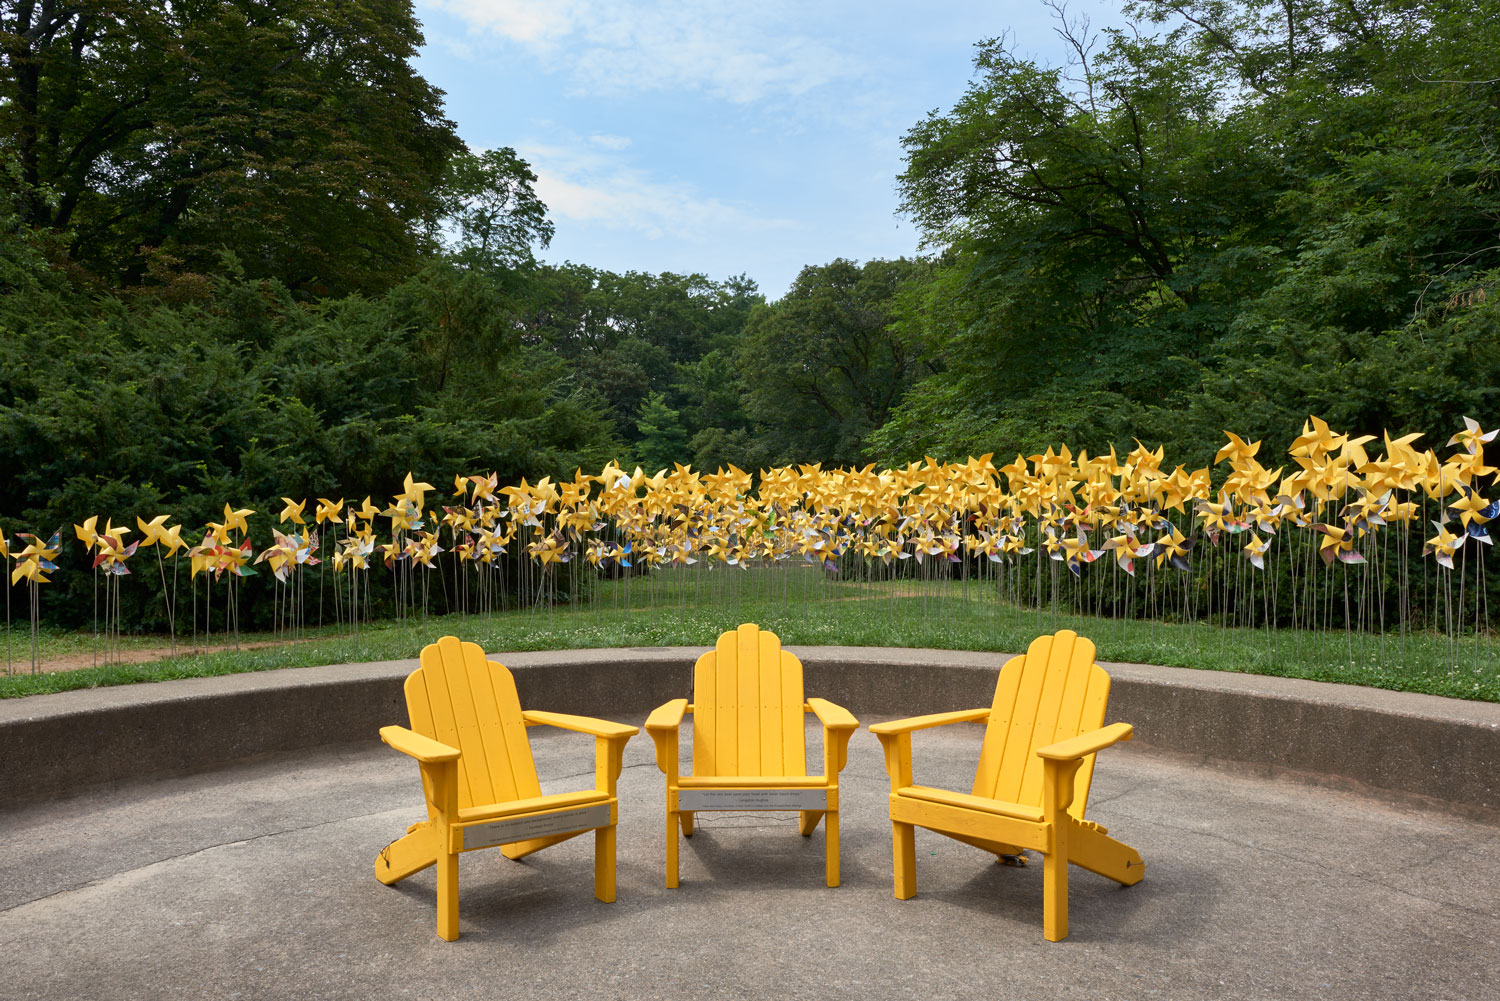 Three Adirondack chairs at the Connective Project in Prospect Park, Brooklyn. Image © harlan erskine